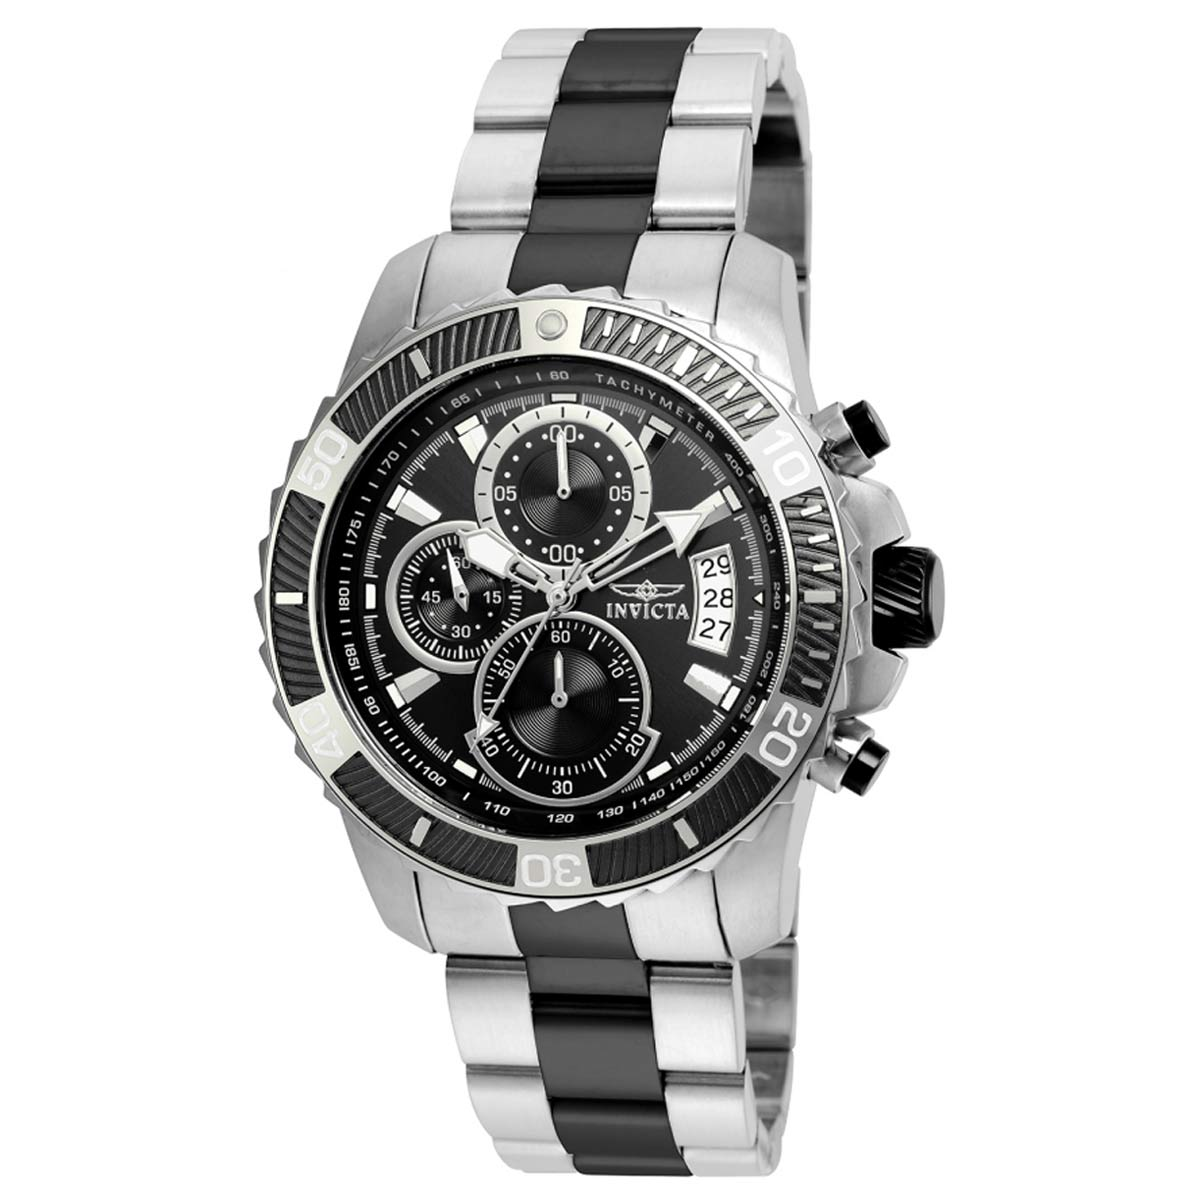 Invicta 22416 Men's Pro Diver Chronograph Black Dial Two Tone Steel Bracelet Watch